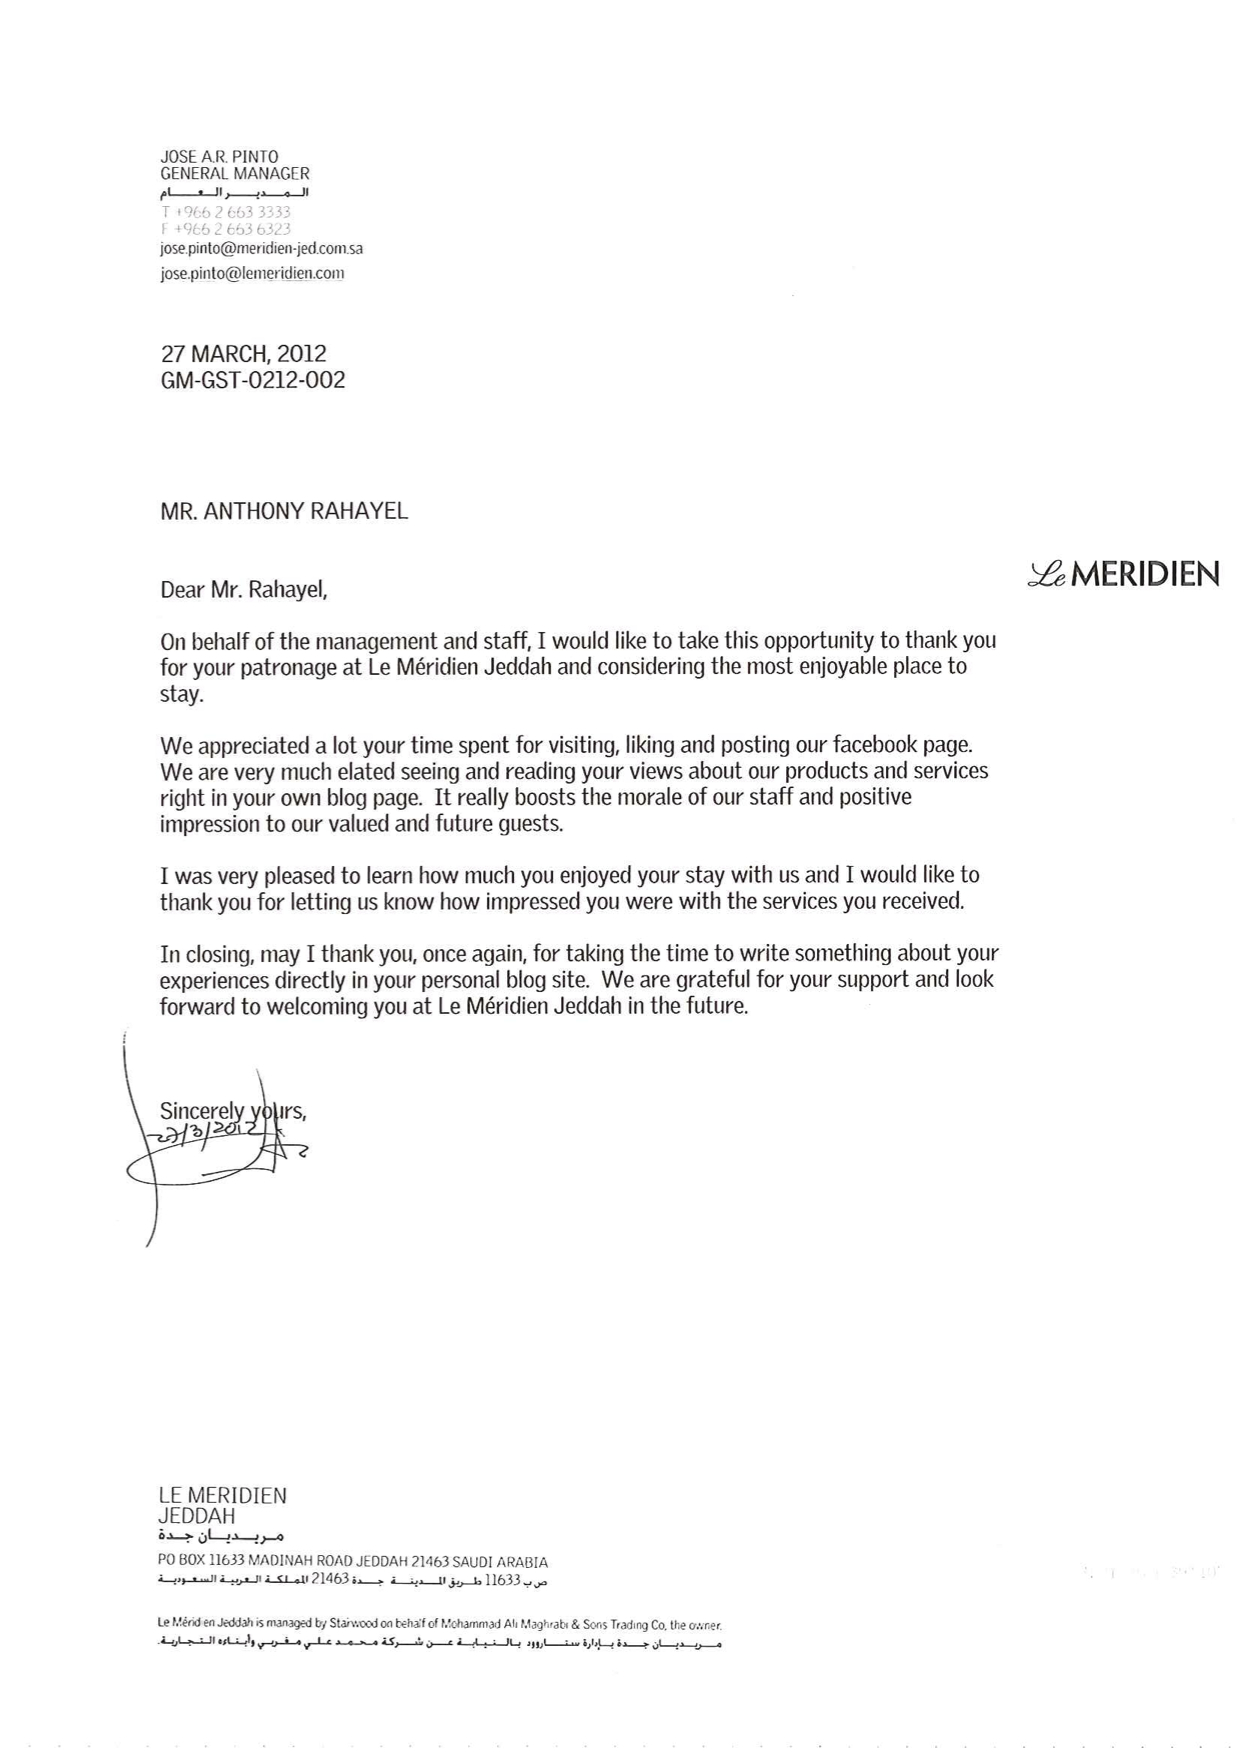 letter-to-mr-athony-rahayel2015-01-22-06-11-44 Vendor Rejection Letter Template on vendor request letter template, vendor termination letter template, vendor reference letter template,